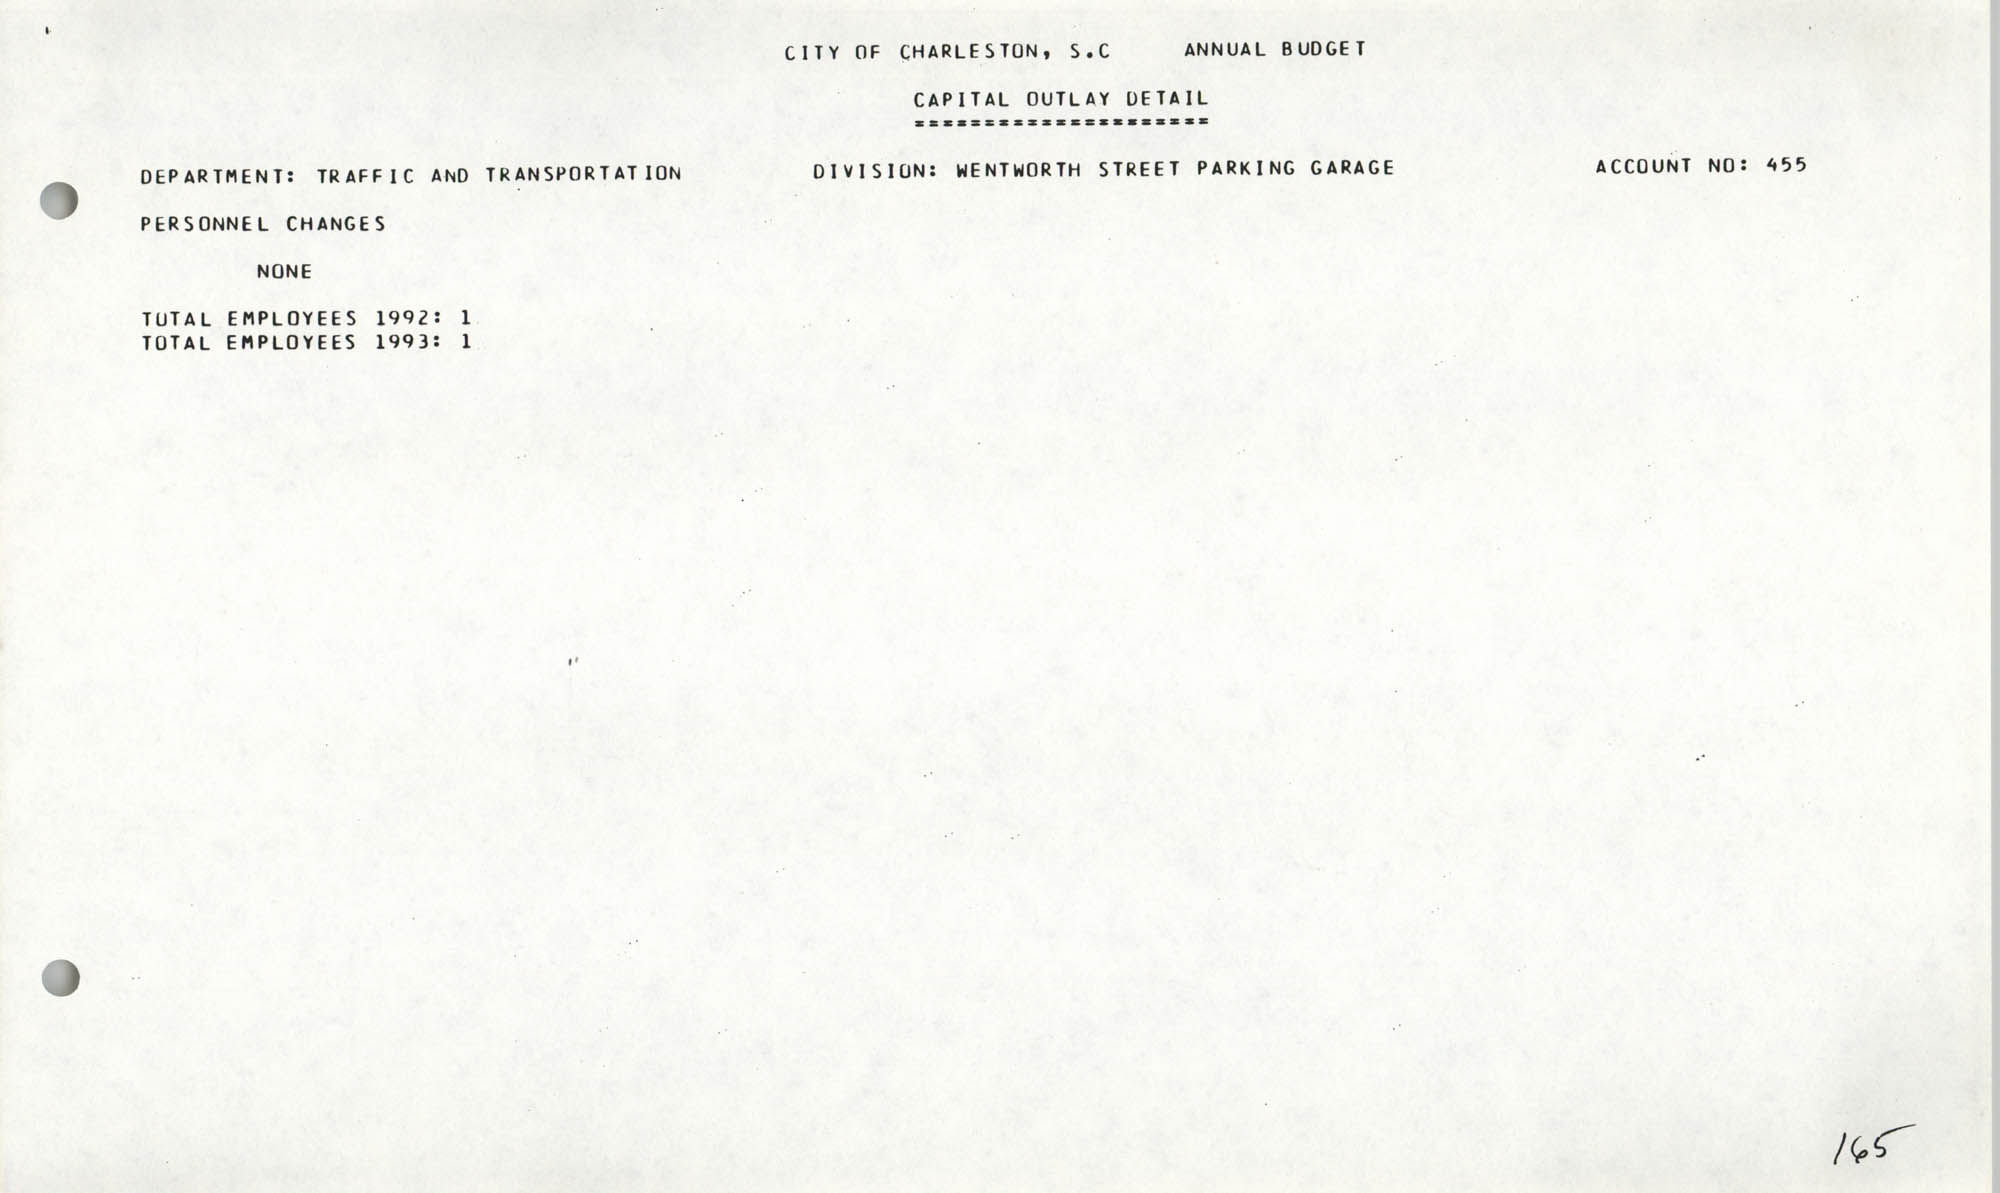 The City Council of Charleston, South Carolina, 1993 Budget, Page 165